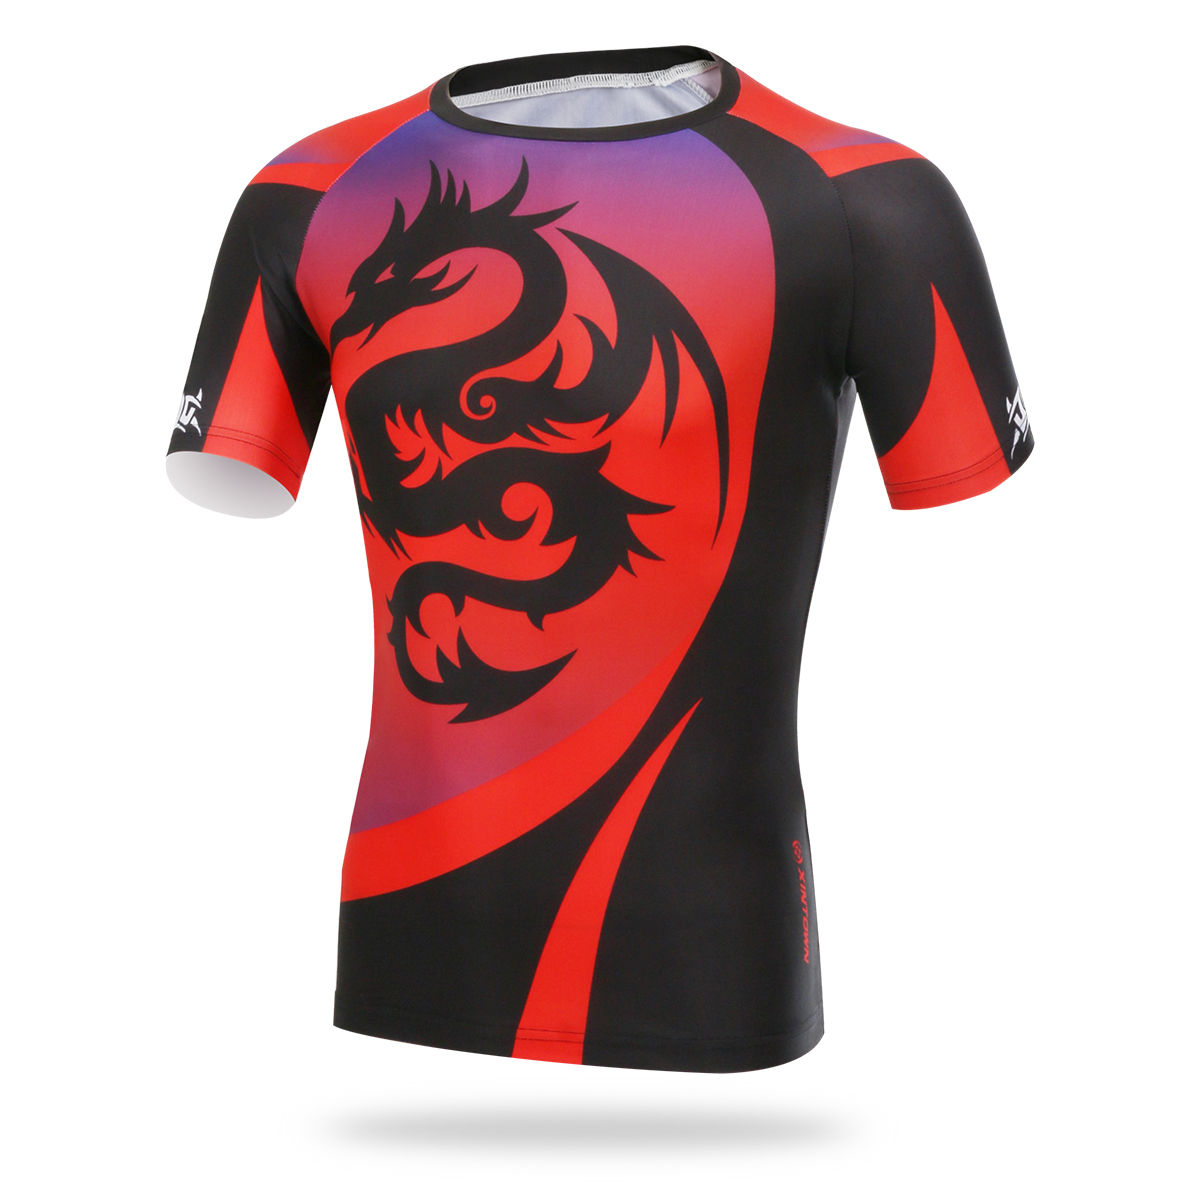 Shirts Fashion Men/'s Cycling Jerseys Breathable Sports Clothing Quick Dry T